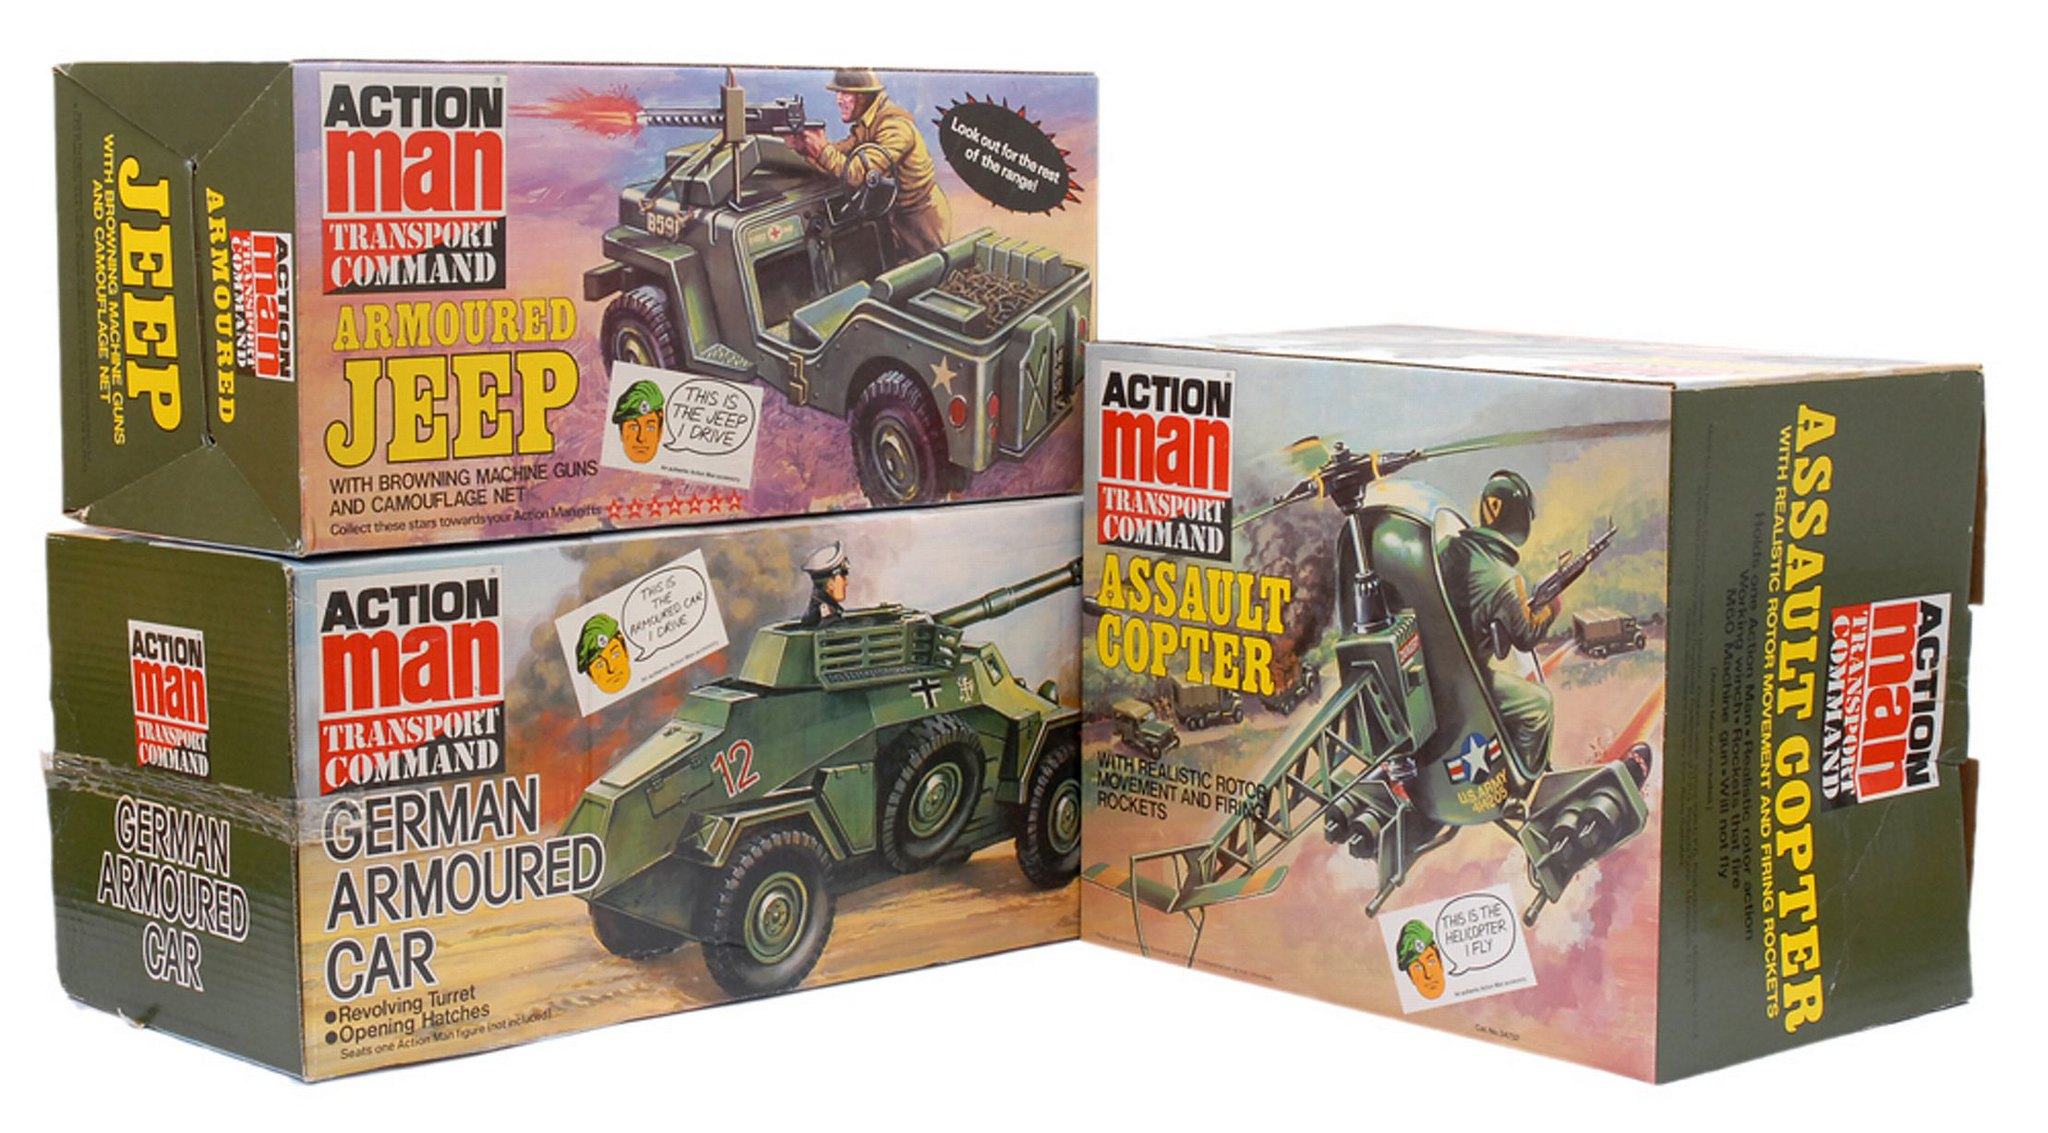 The Frank Beech retro toy shop - Action Man